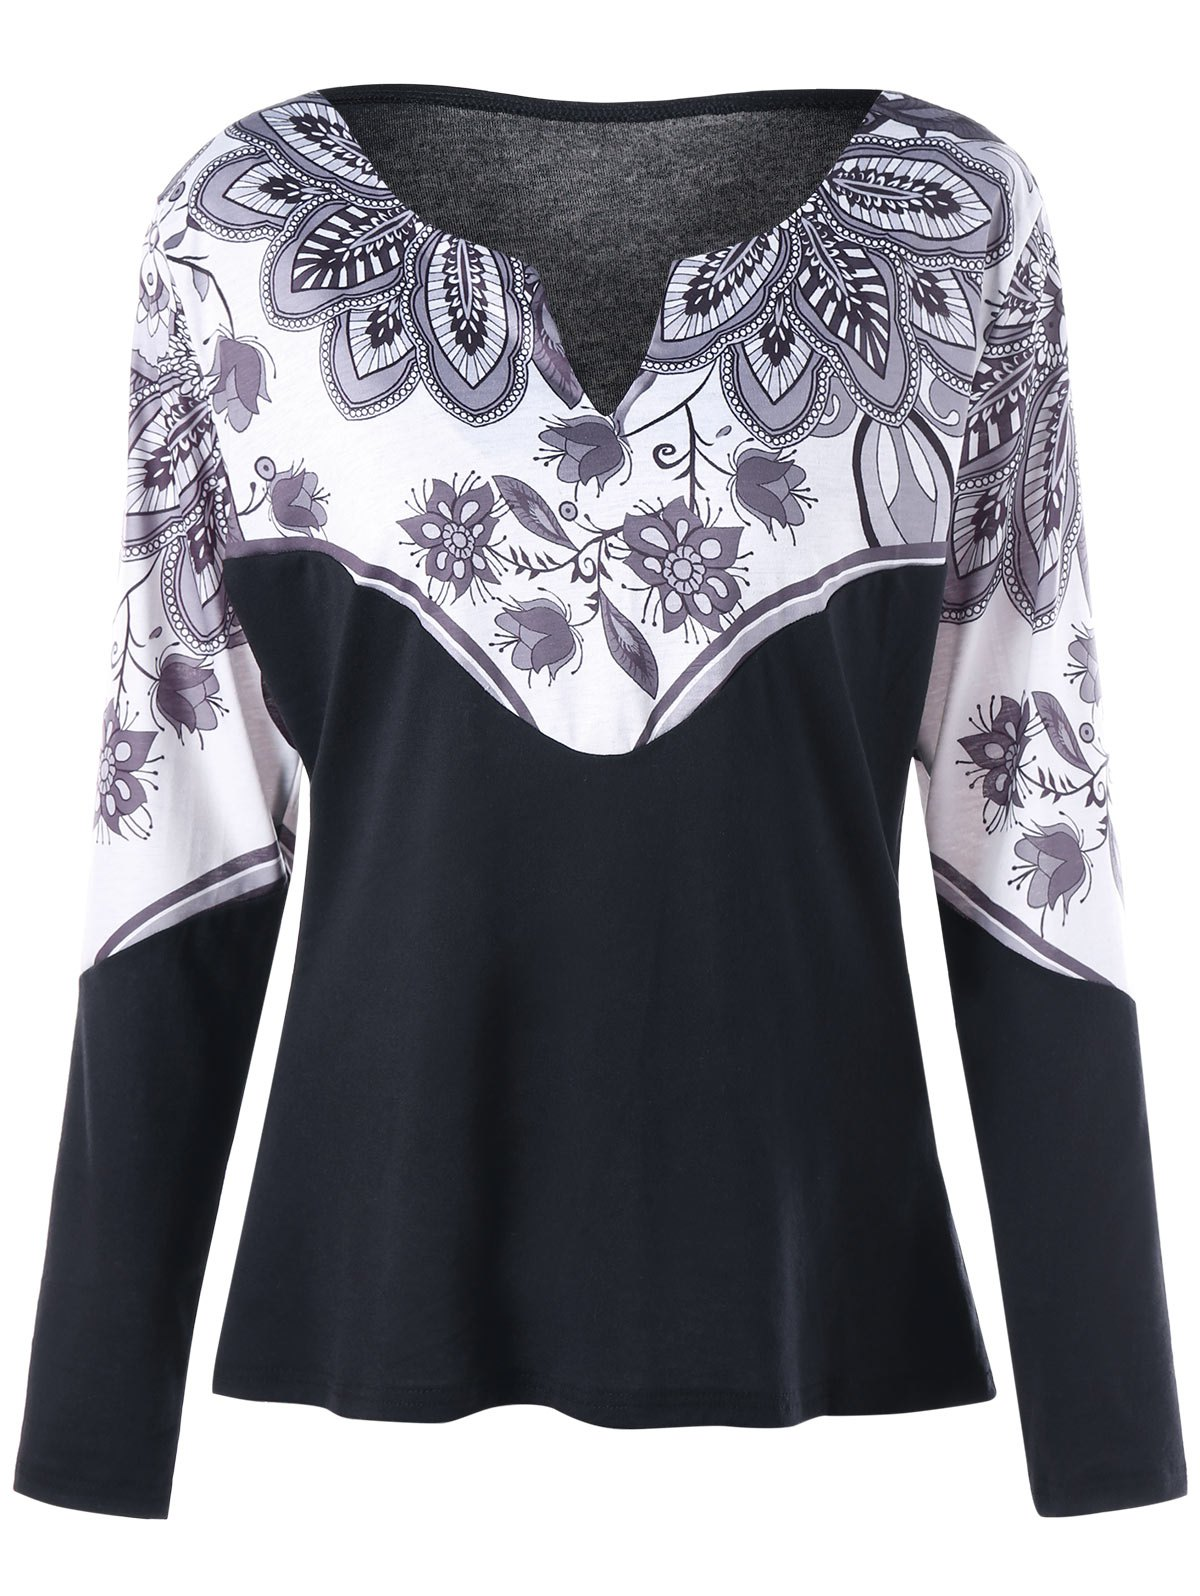 Plus Size Printed Split Neck Long Sleeve TeeWOMEN<br><br>Size: 2XL; Color: WHITE AND BLACK; Material: Polyester,Spandex; Shirt Length: Regular; Sleeve Length: Full; Collar: V-Neck; Style: Fashion; Season: Fall,Spring; Pattern Type: Print; Weight: 0.2360kg; Package Contents: 1 x Tee;